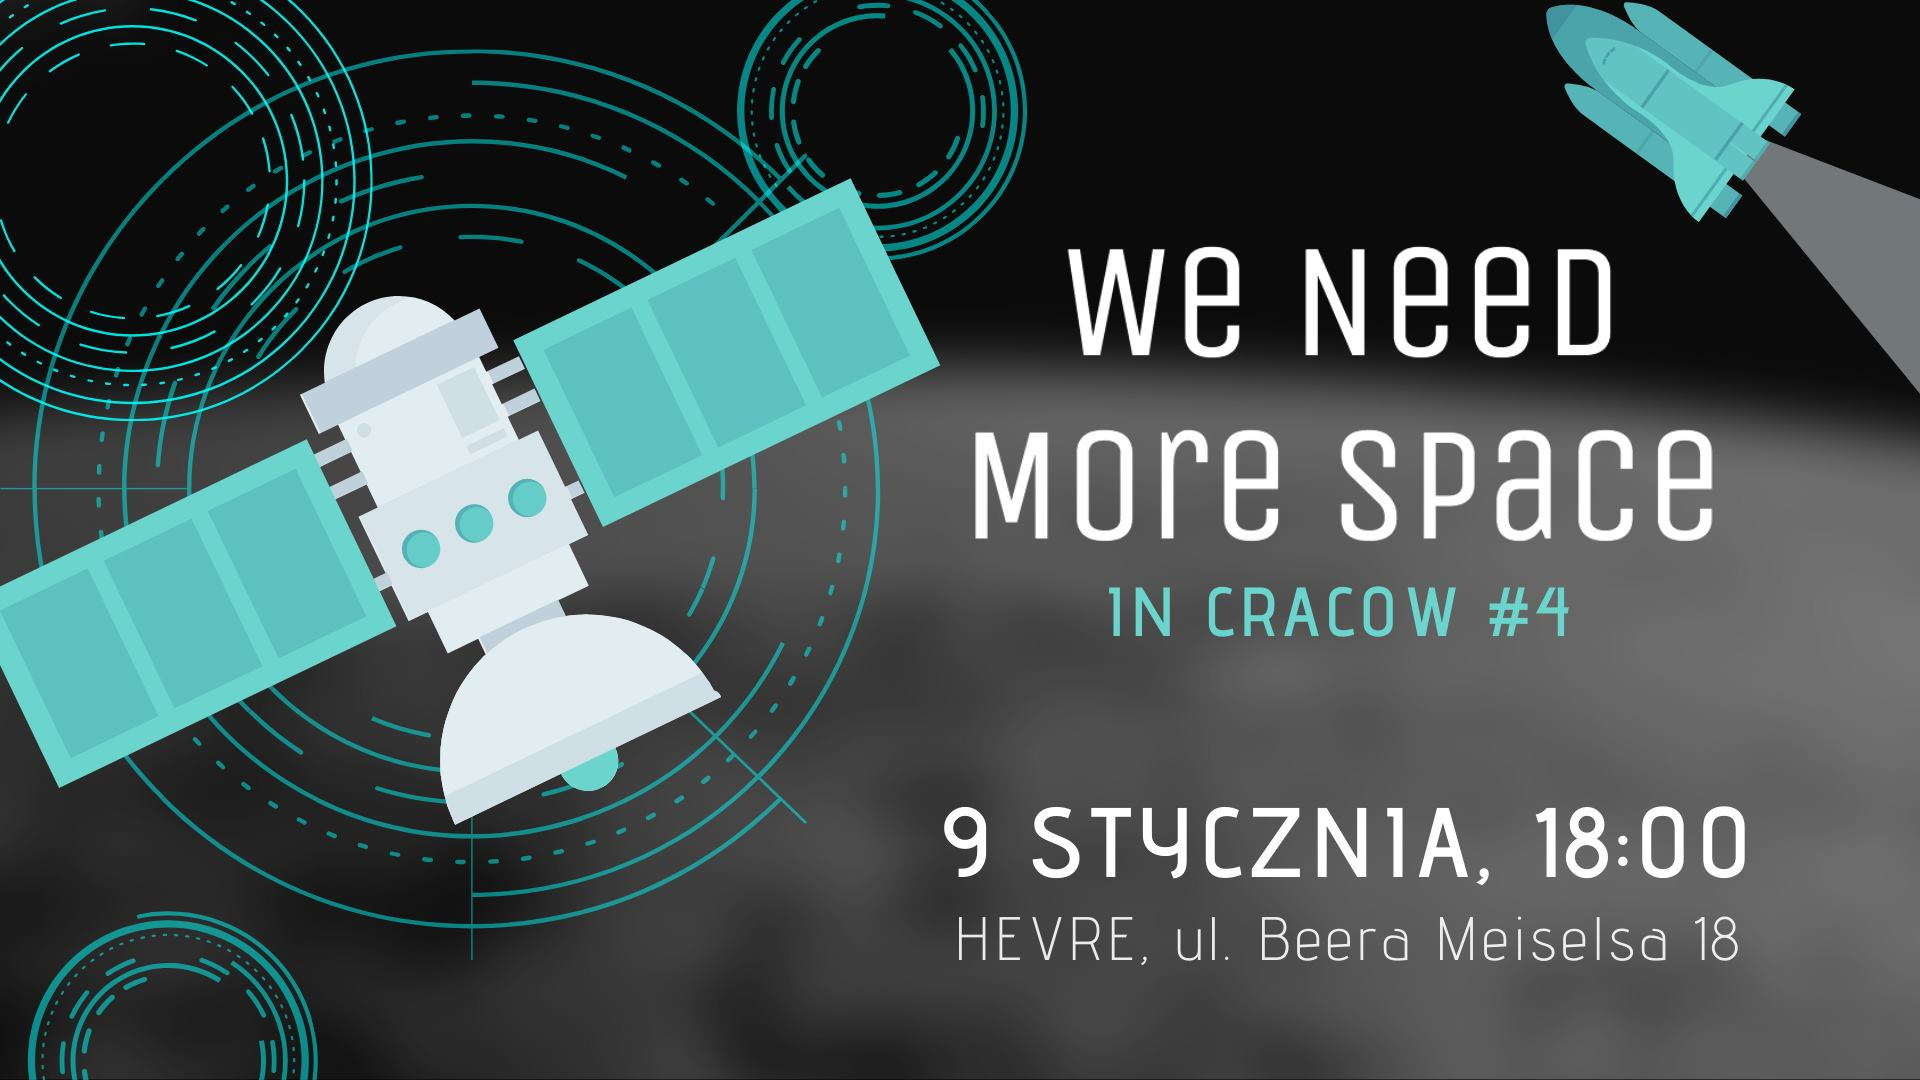 We Need More Space in Cracow #4 @ HEVRE